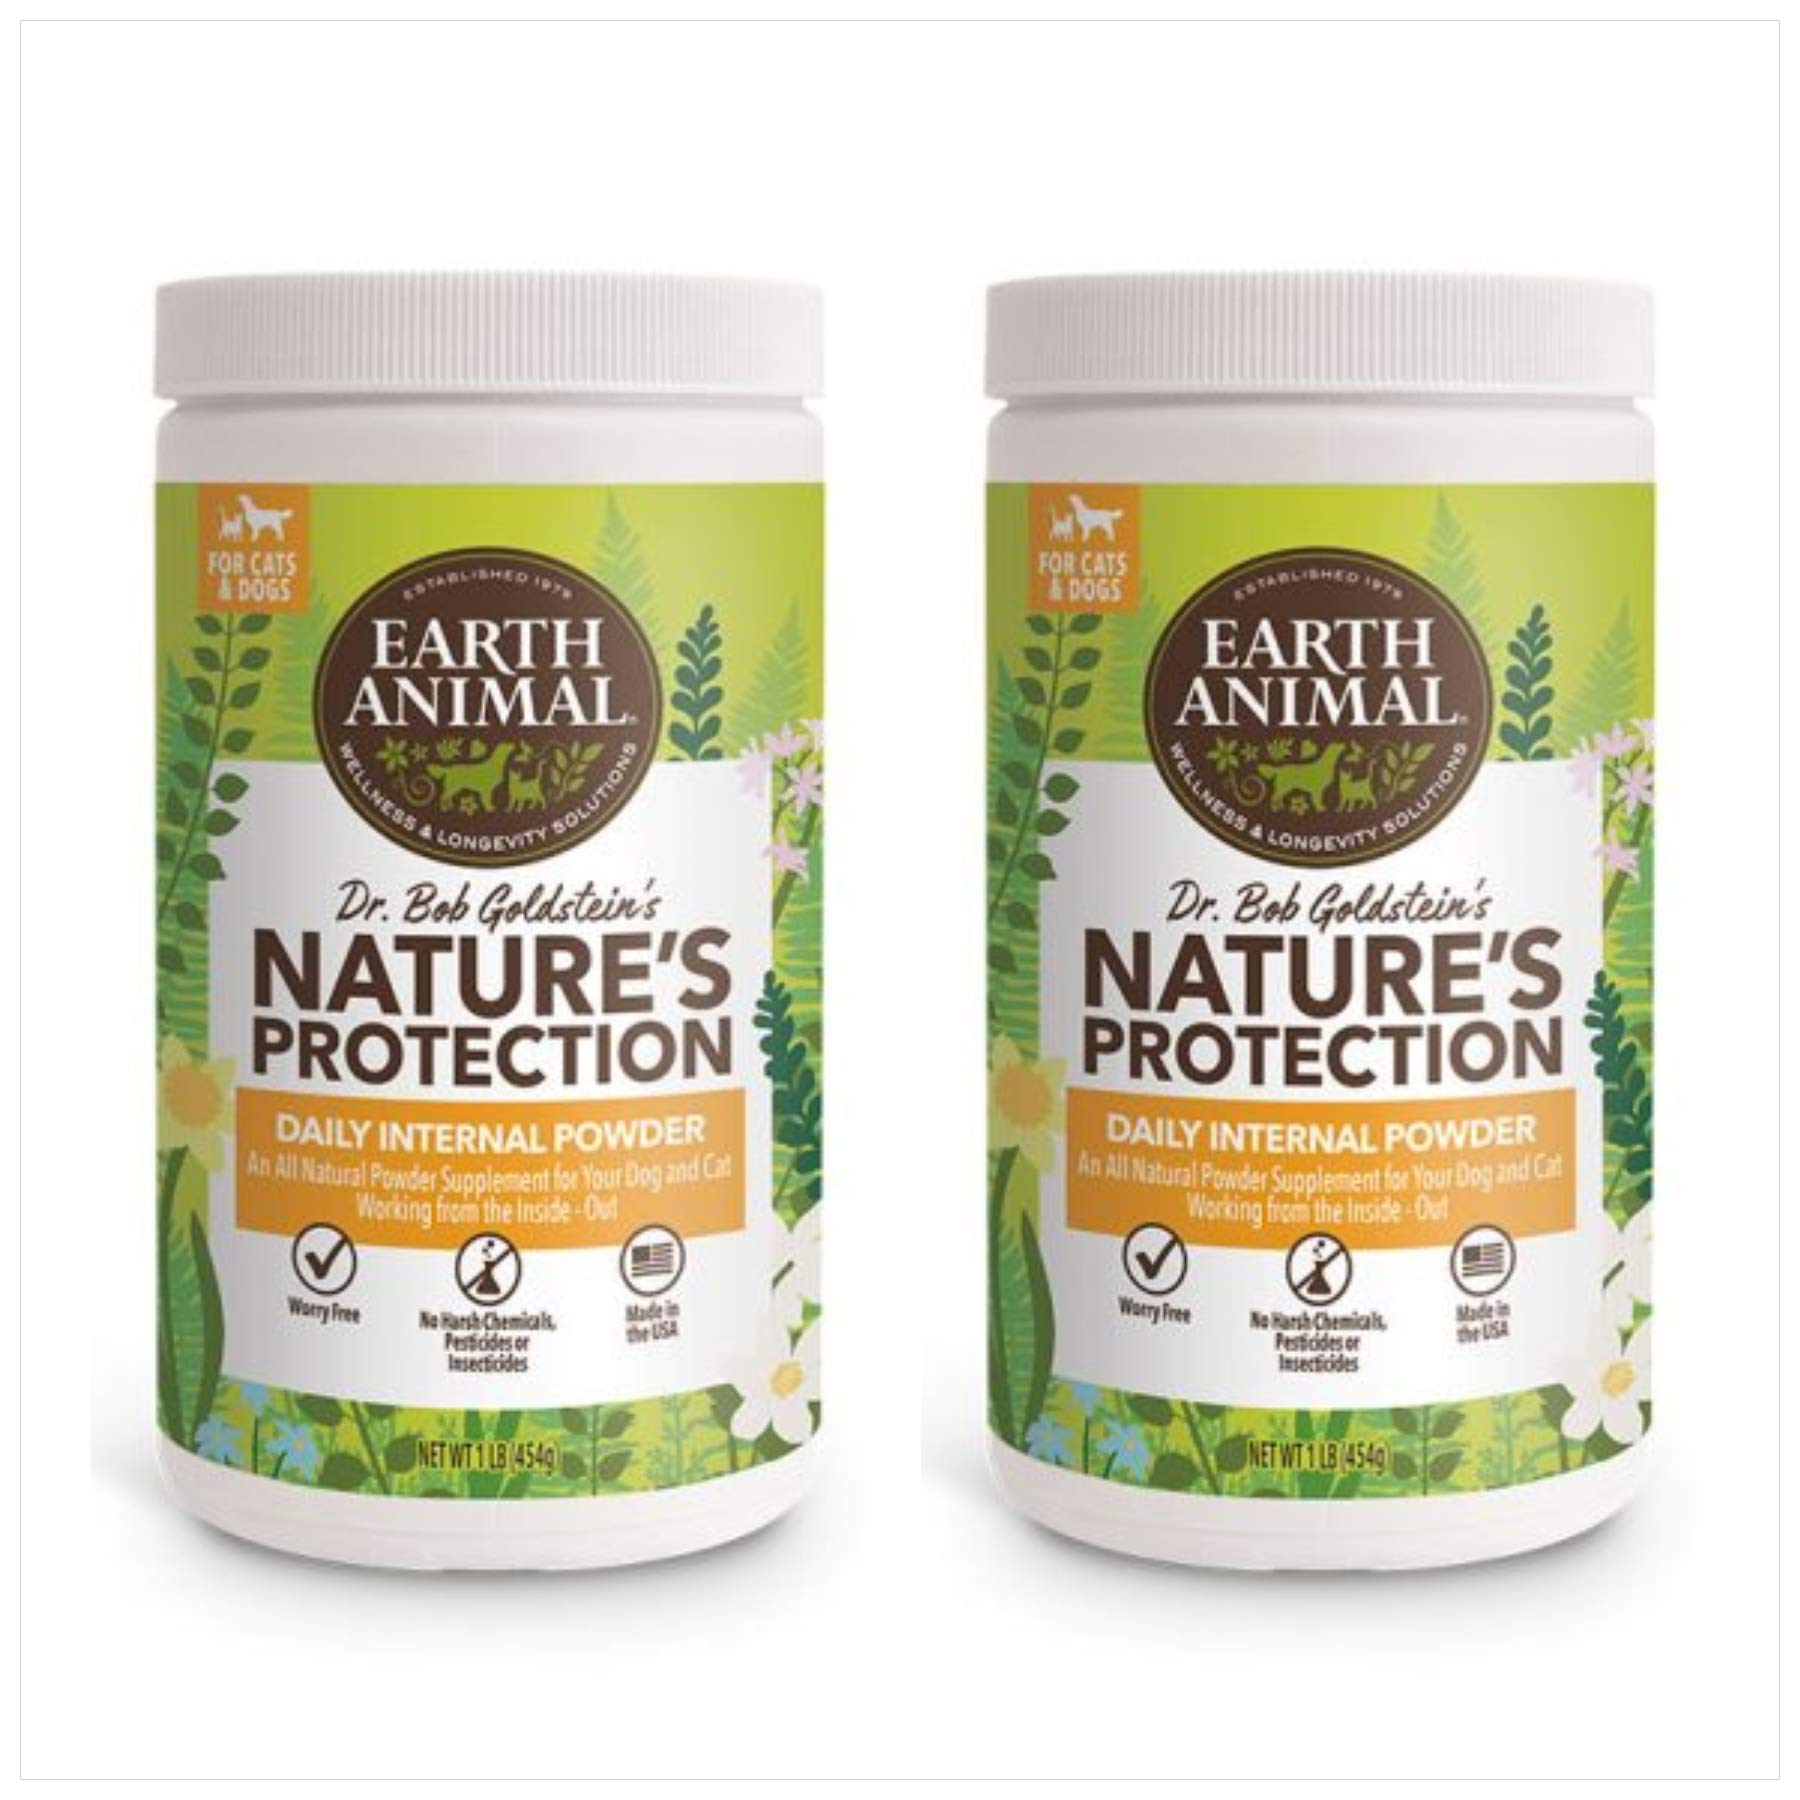 Earth Animal (2 Pack) Flea and Tick Internal Powder 1 Pound Each by Earth Animal